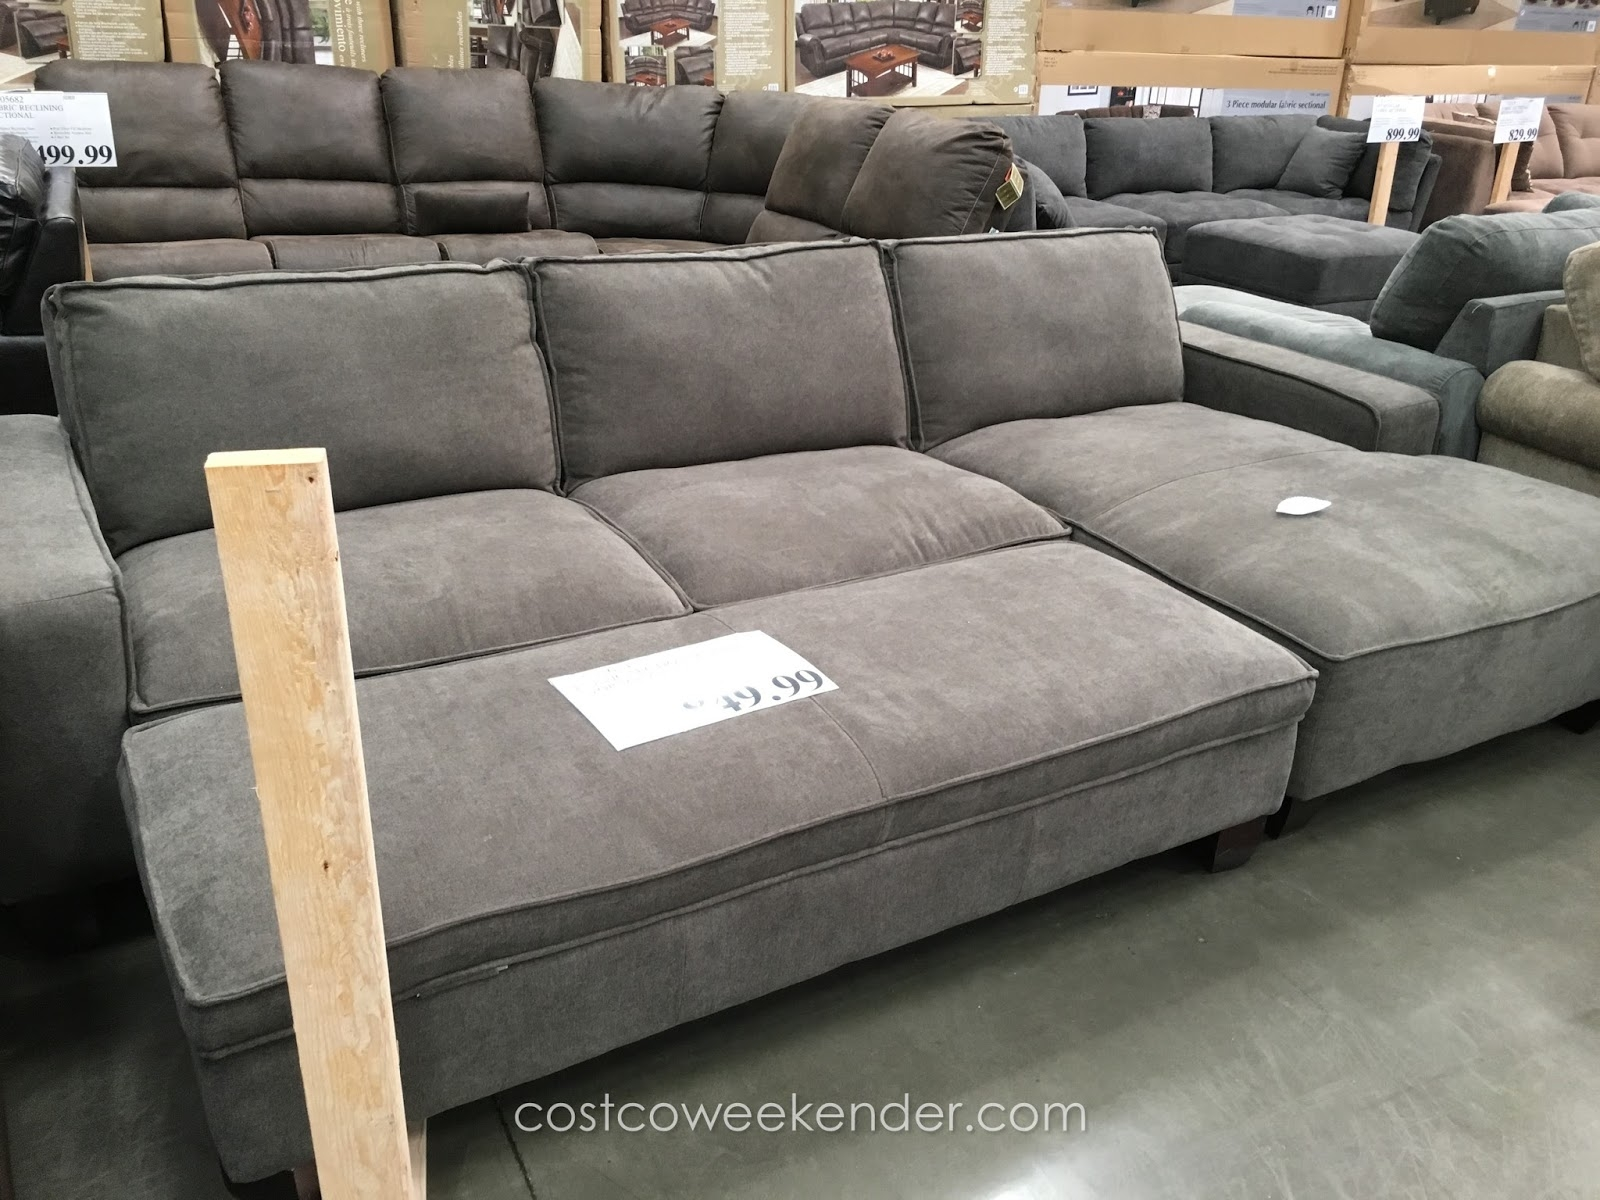 Sofas Center Cosco Reclining Sofas Sofa Costco 2016costco Inside Berkline Sofa Recliner (Image 11 of 15)